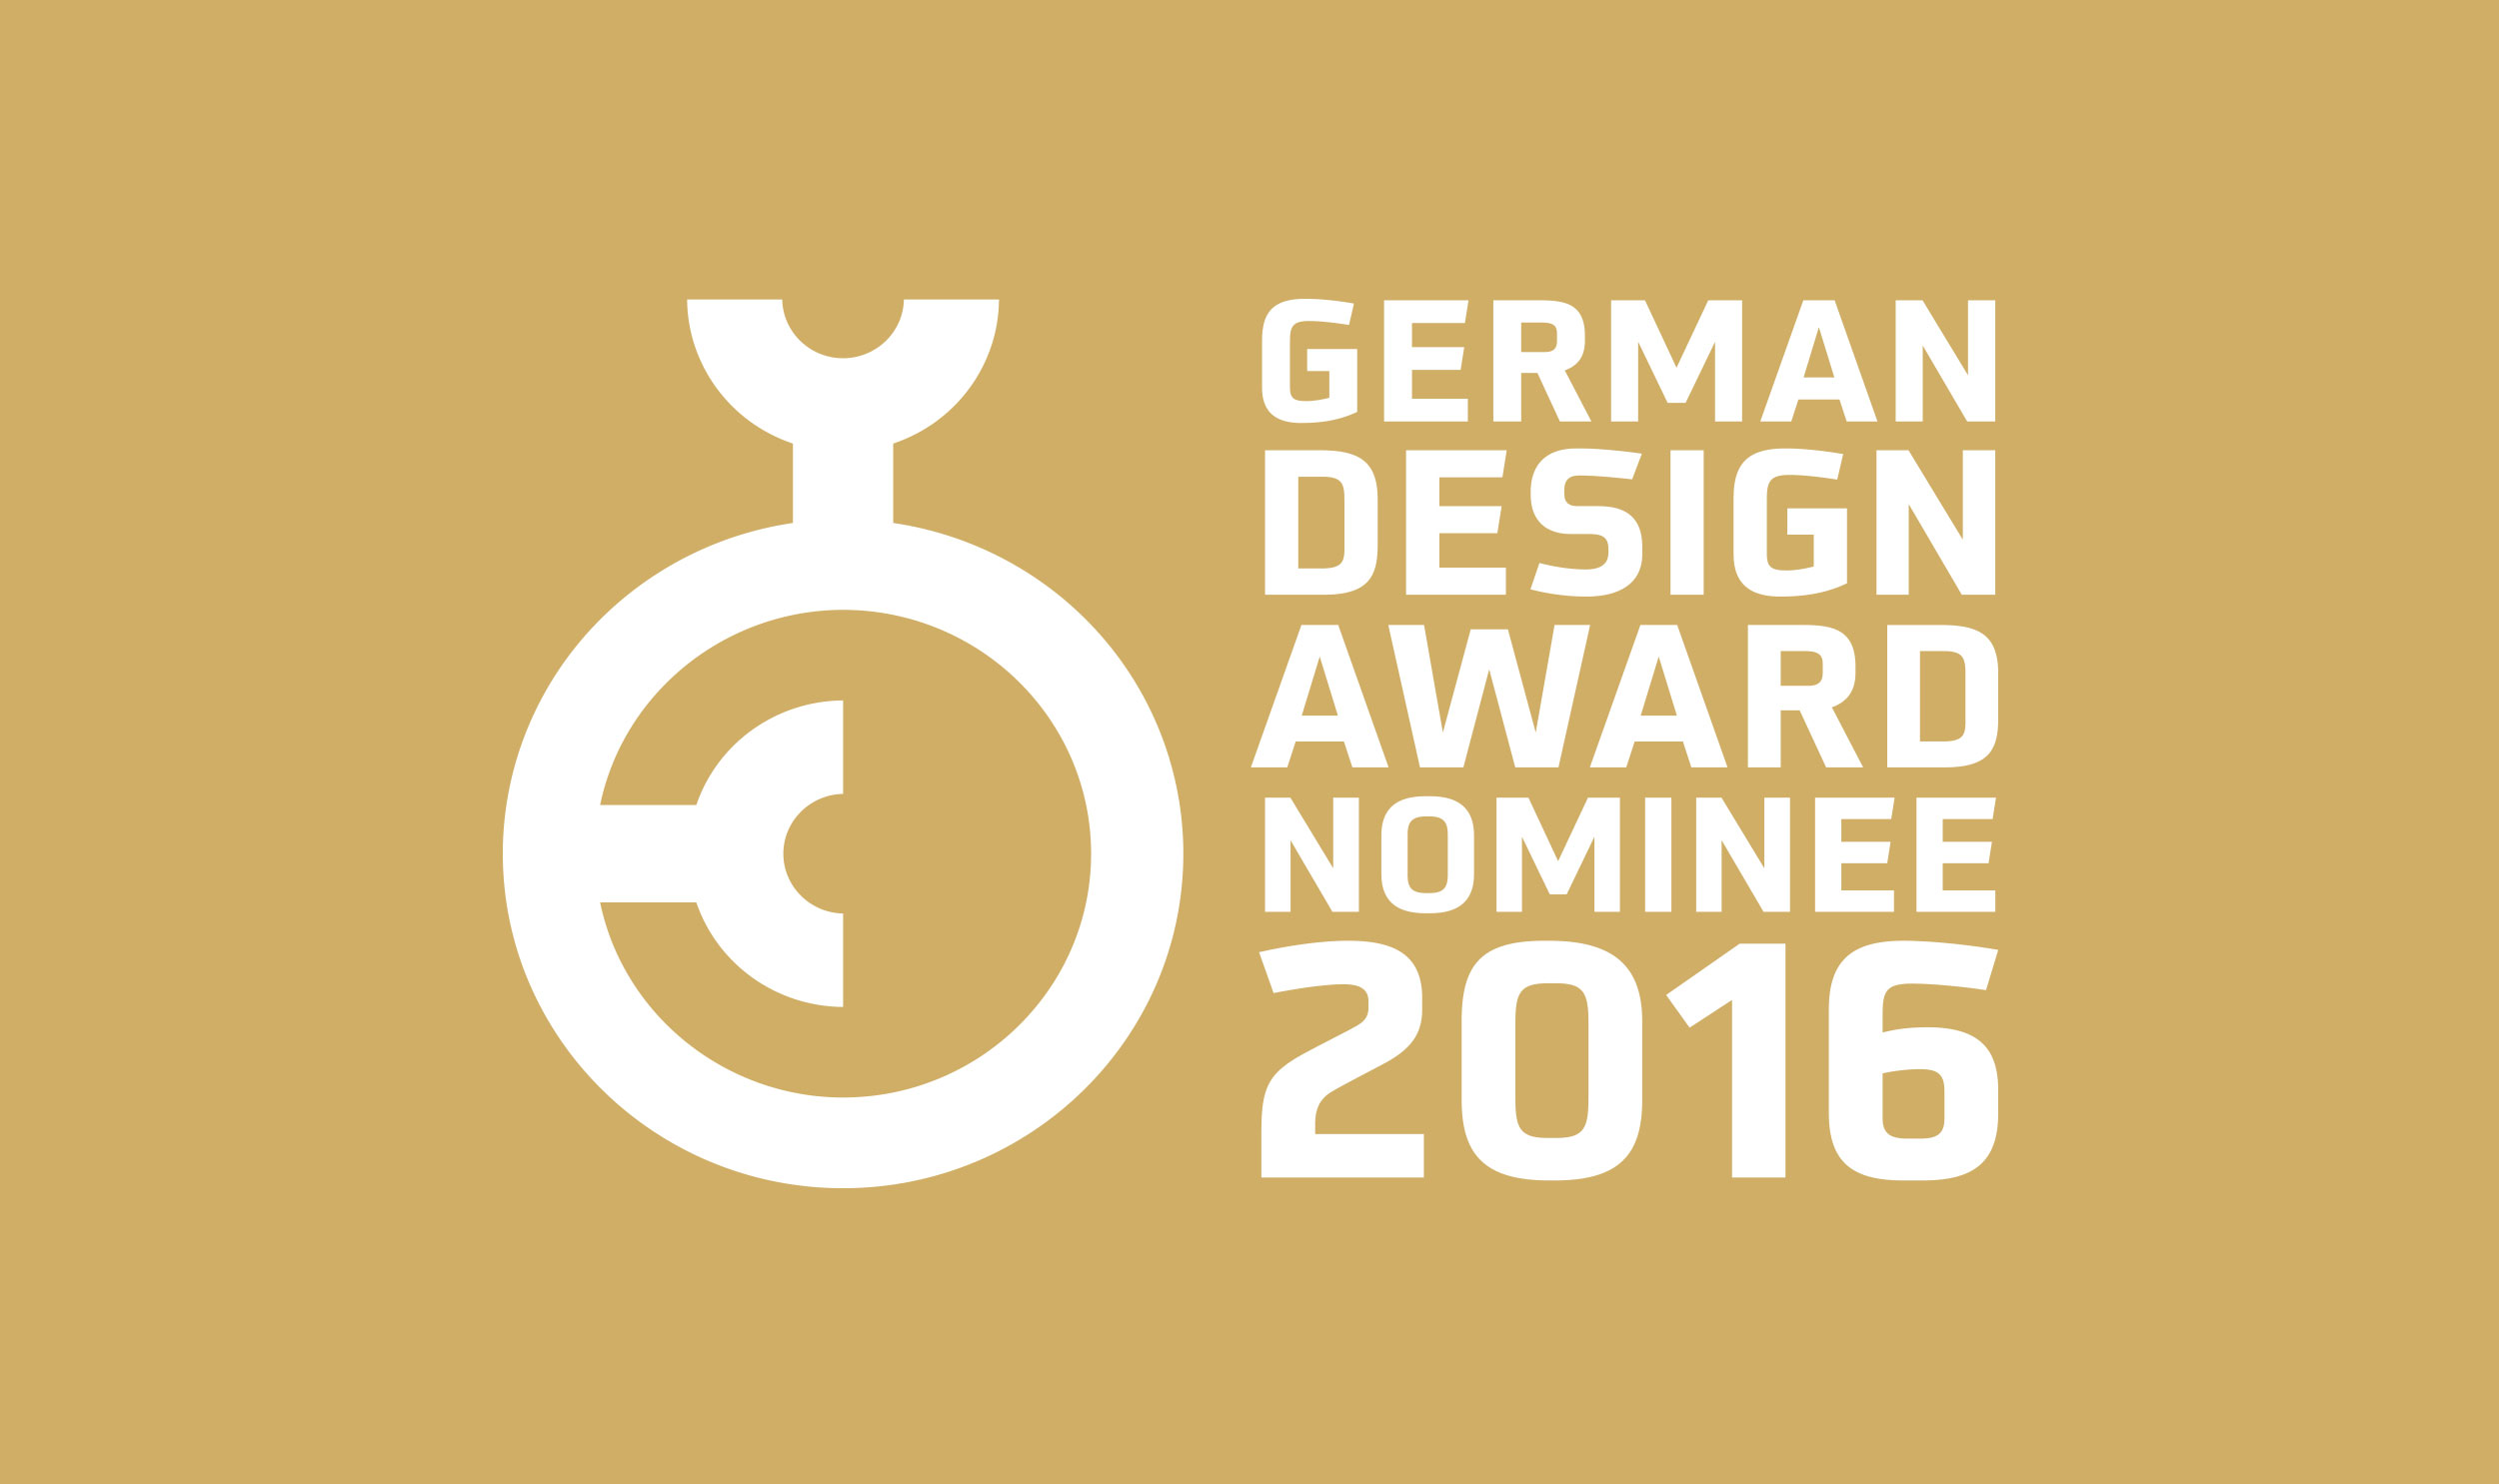 AWARD_German-Design-Award_2016_Nominee